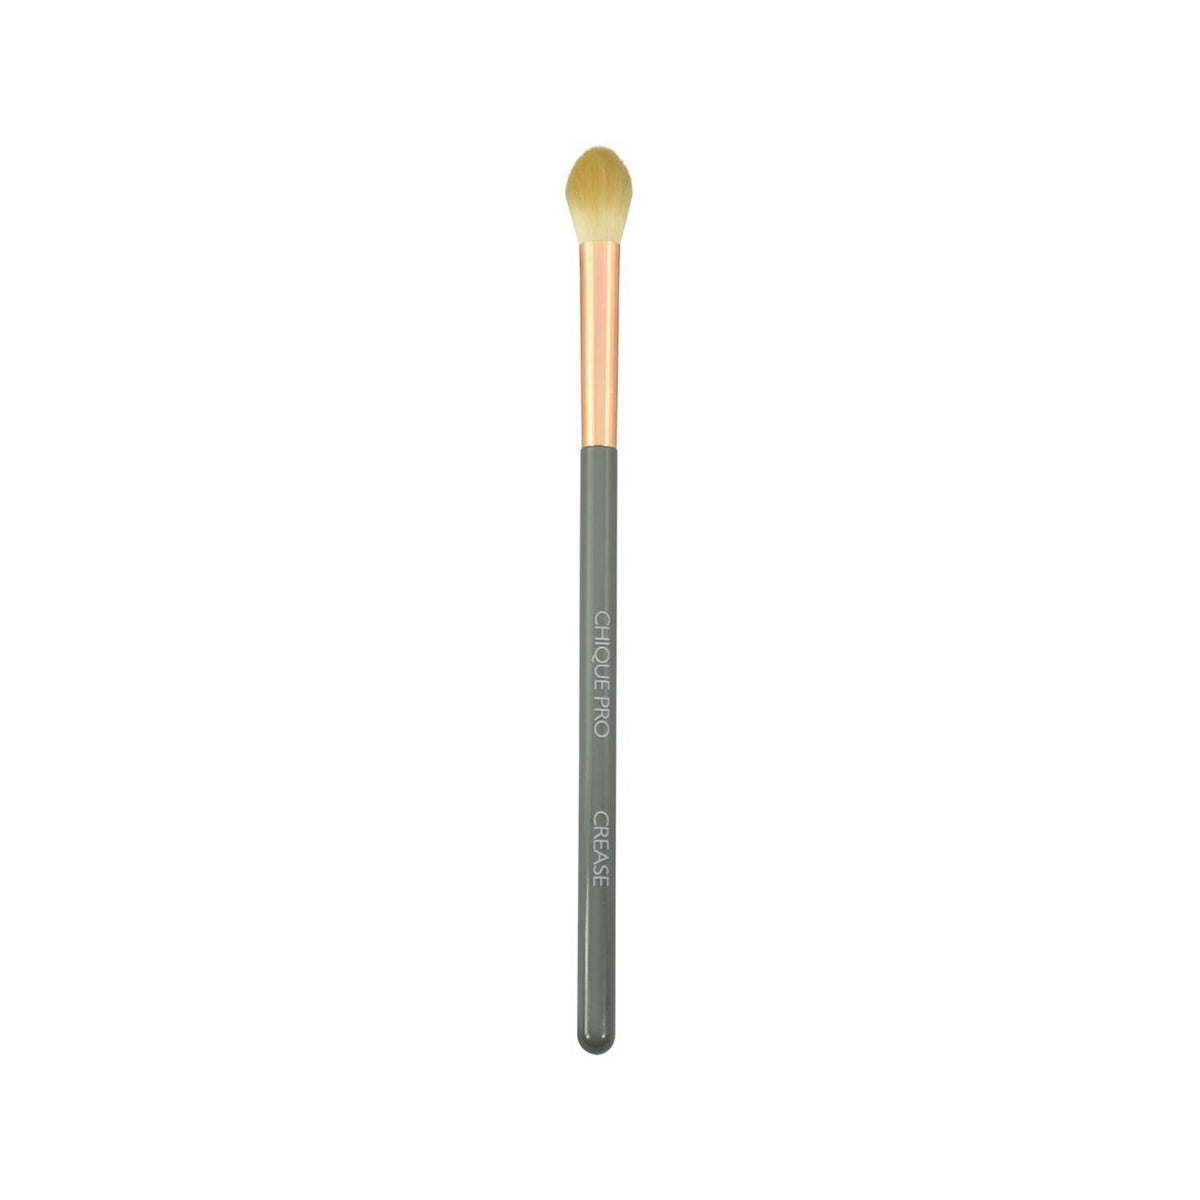 Royal & Langnickel Chique Pro Crease Brush